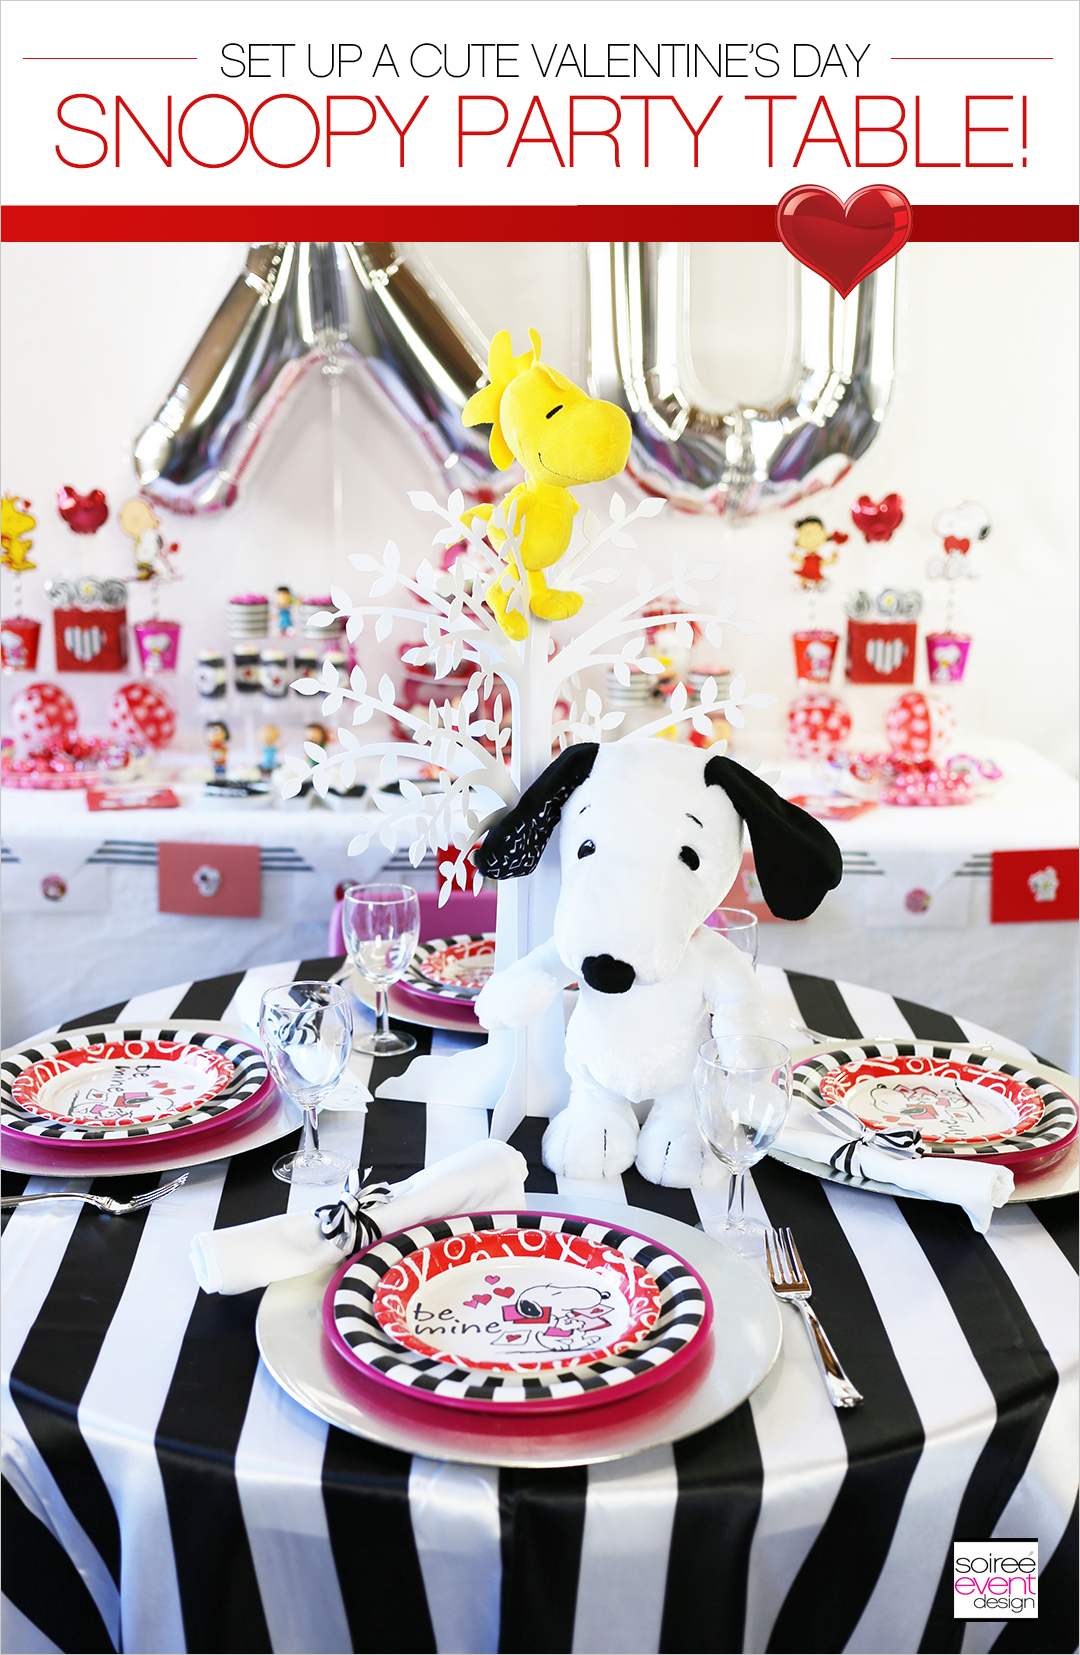 Peanuts Valentines Day Party, Snoopy Party Table